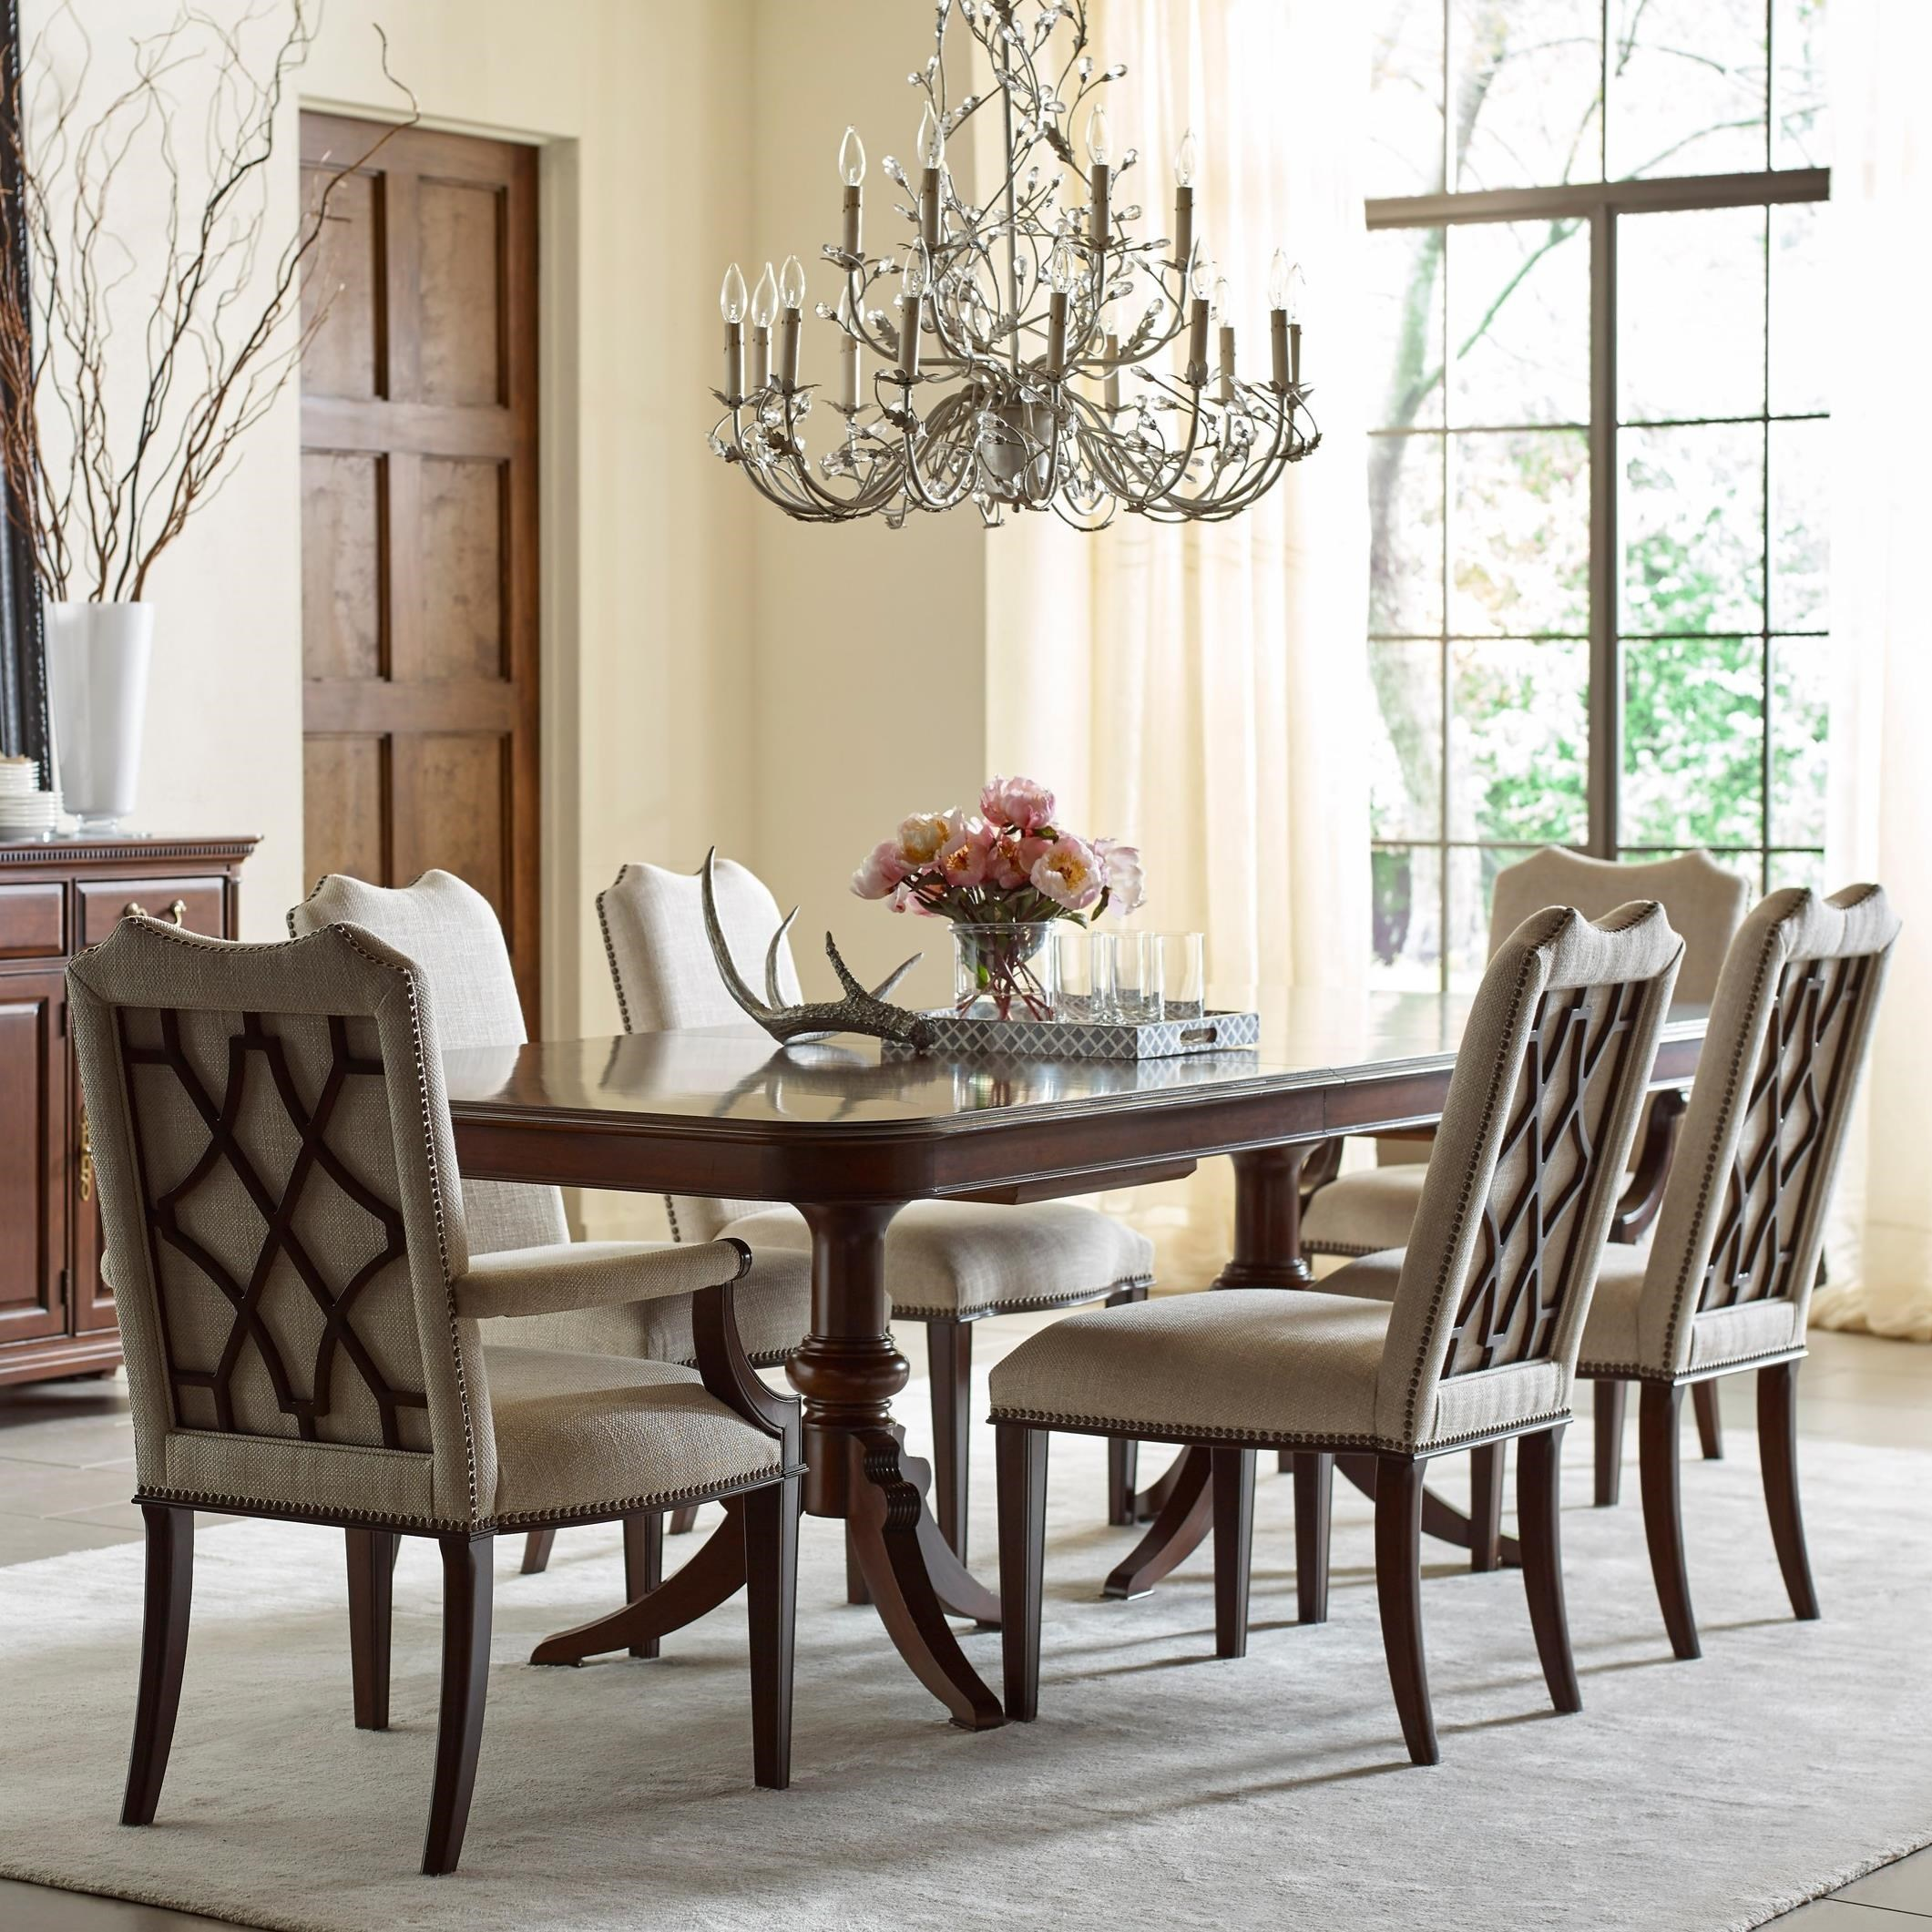 Kincaid furniture hadleigh seven piece formal dining set for Formal dining chairs